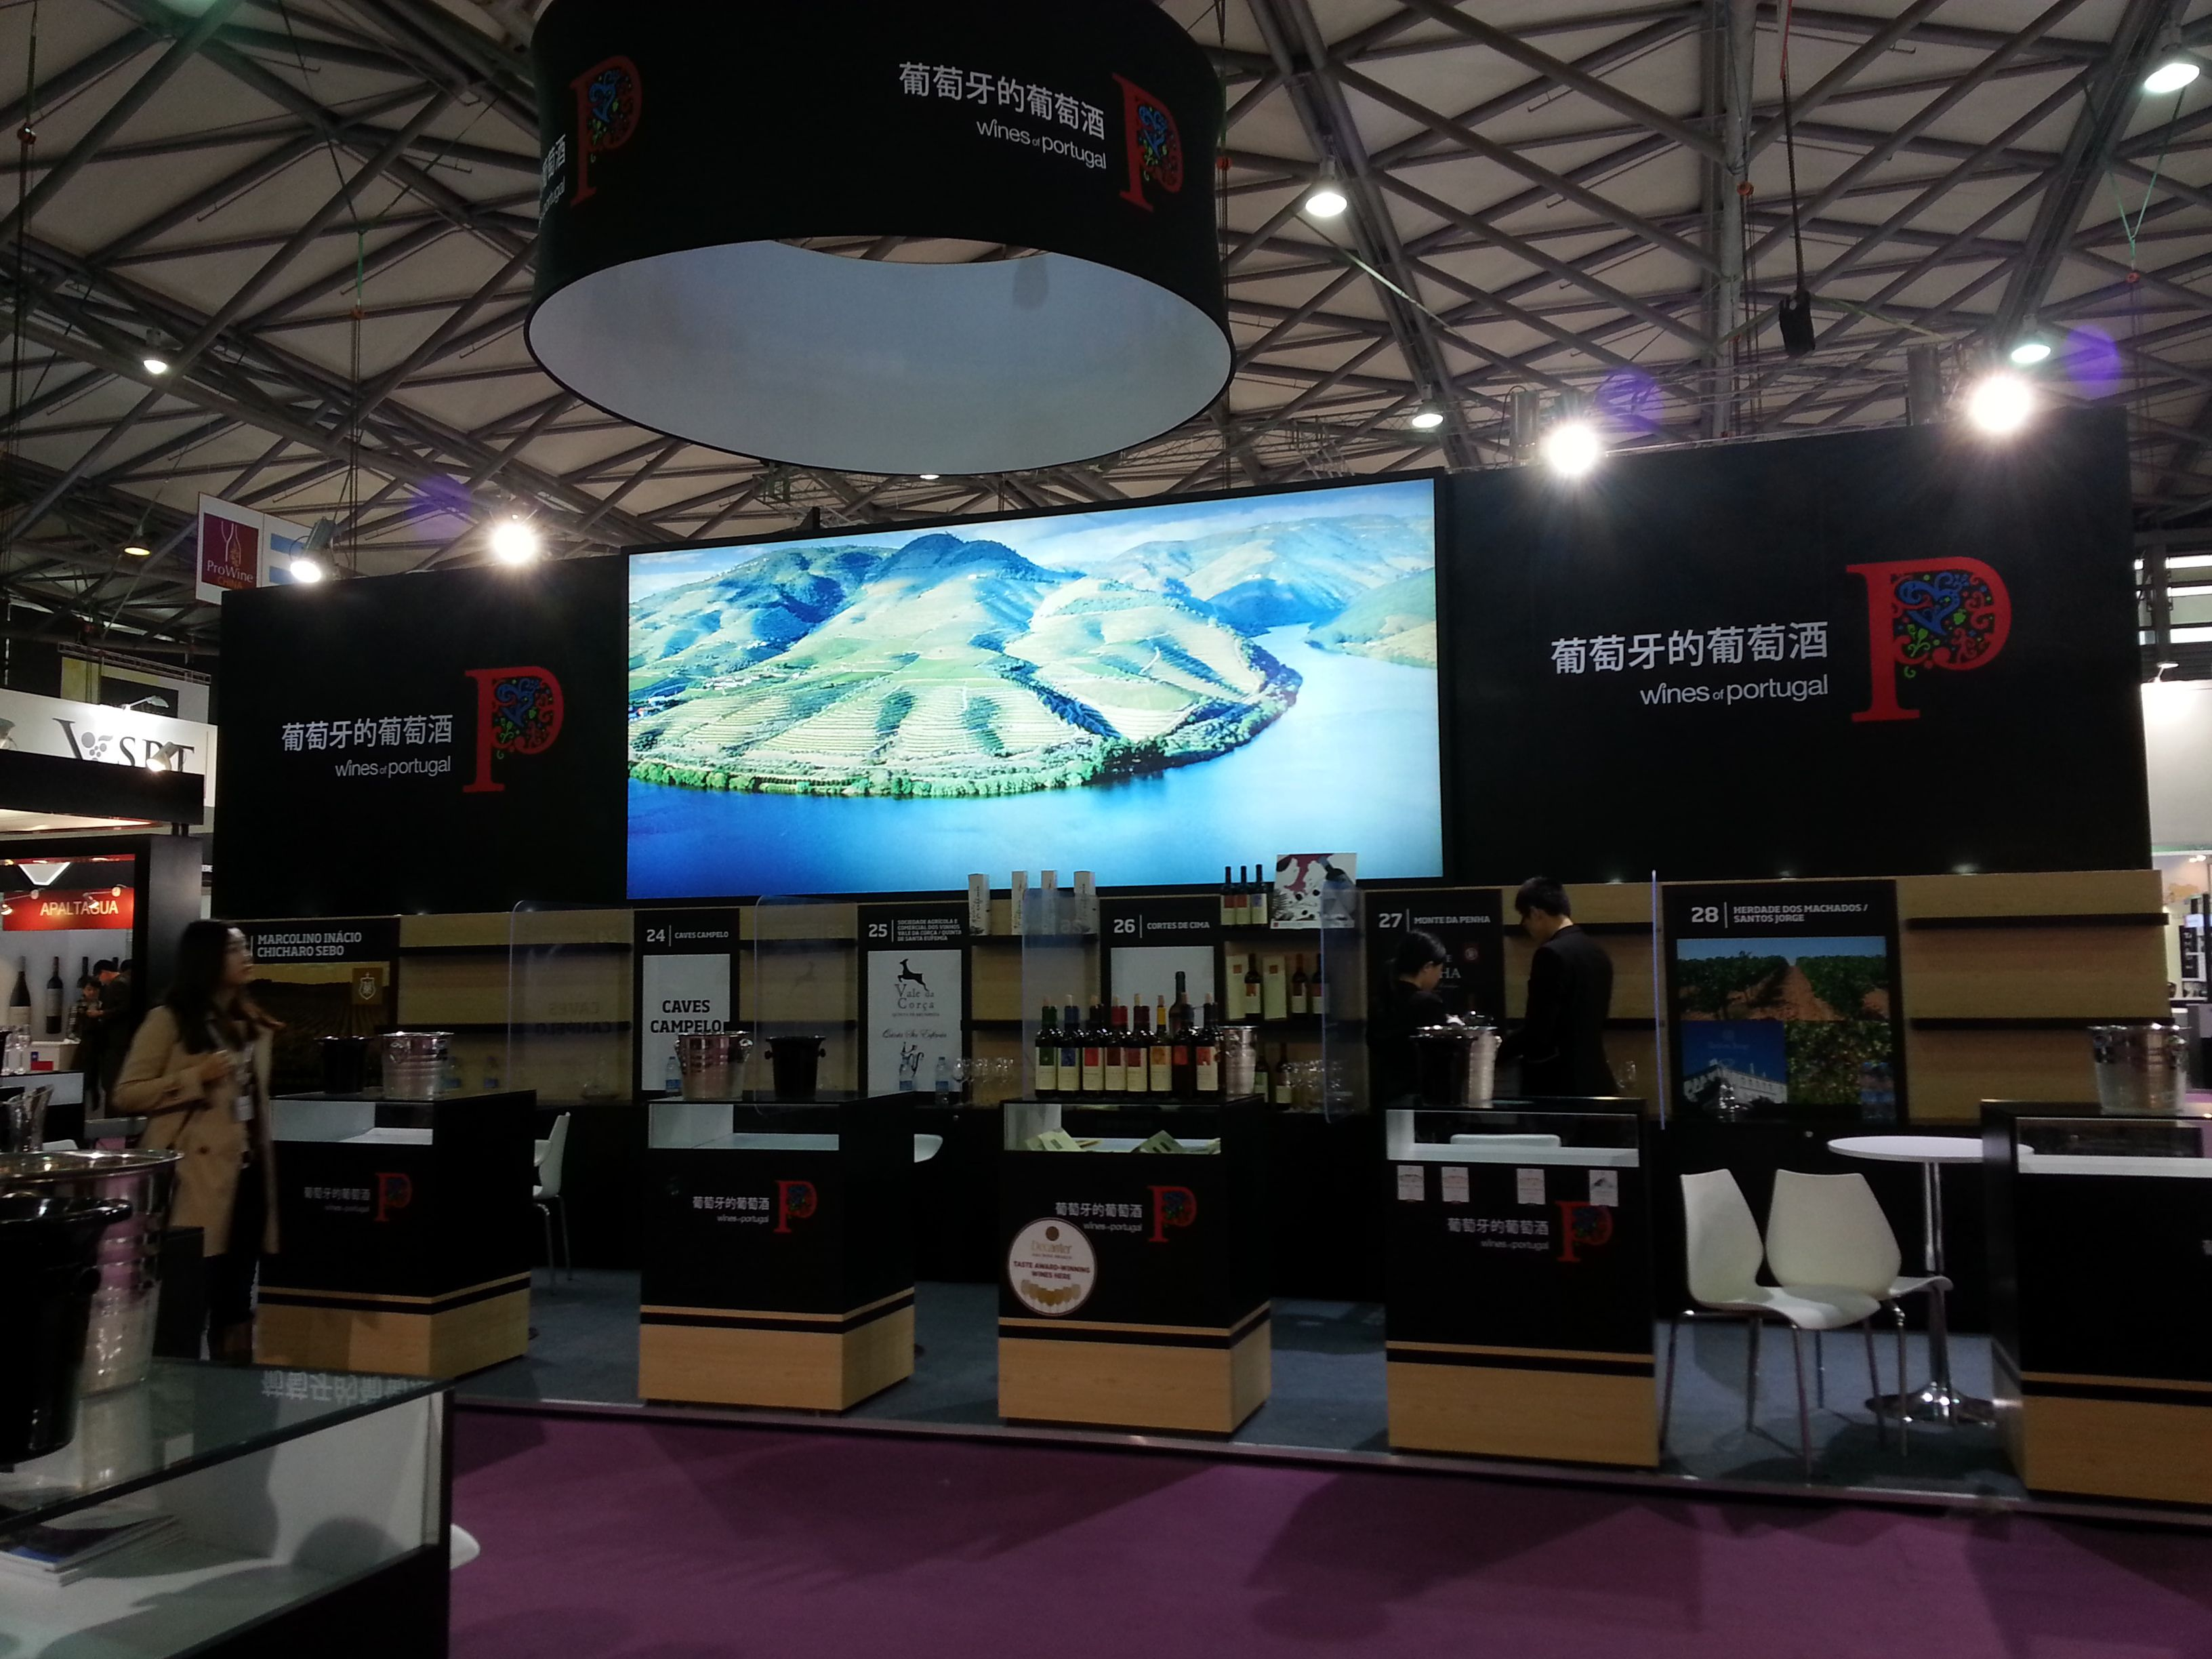 ProWine China 2013 In Shanghai For Portugal Wines Association